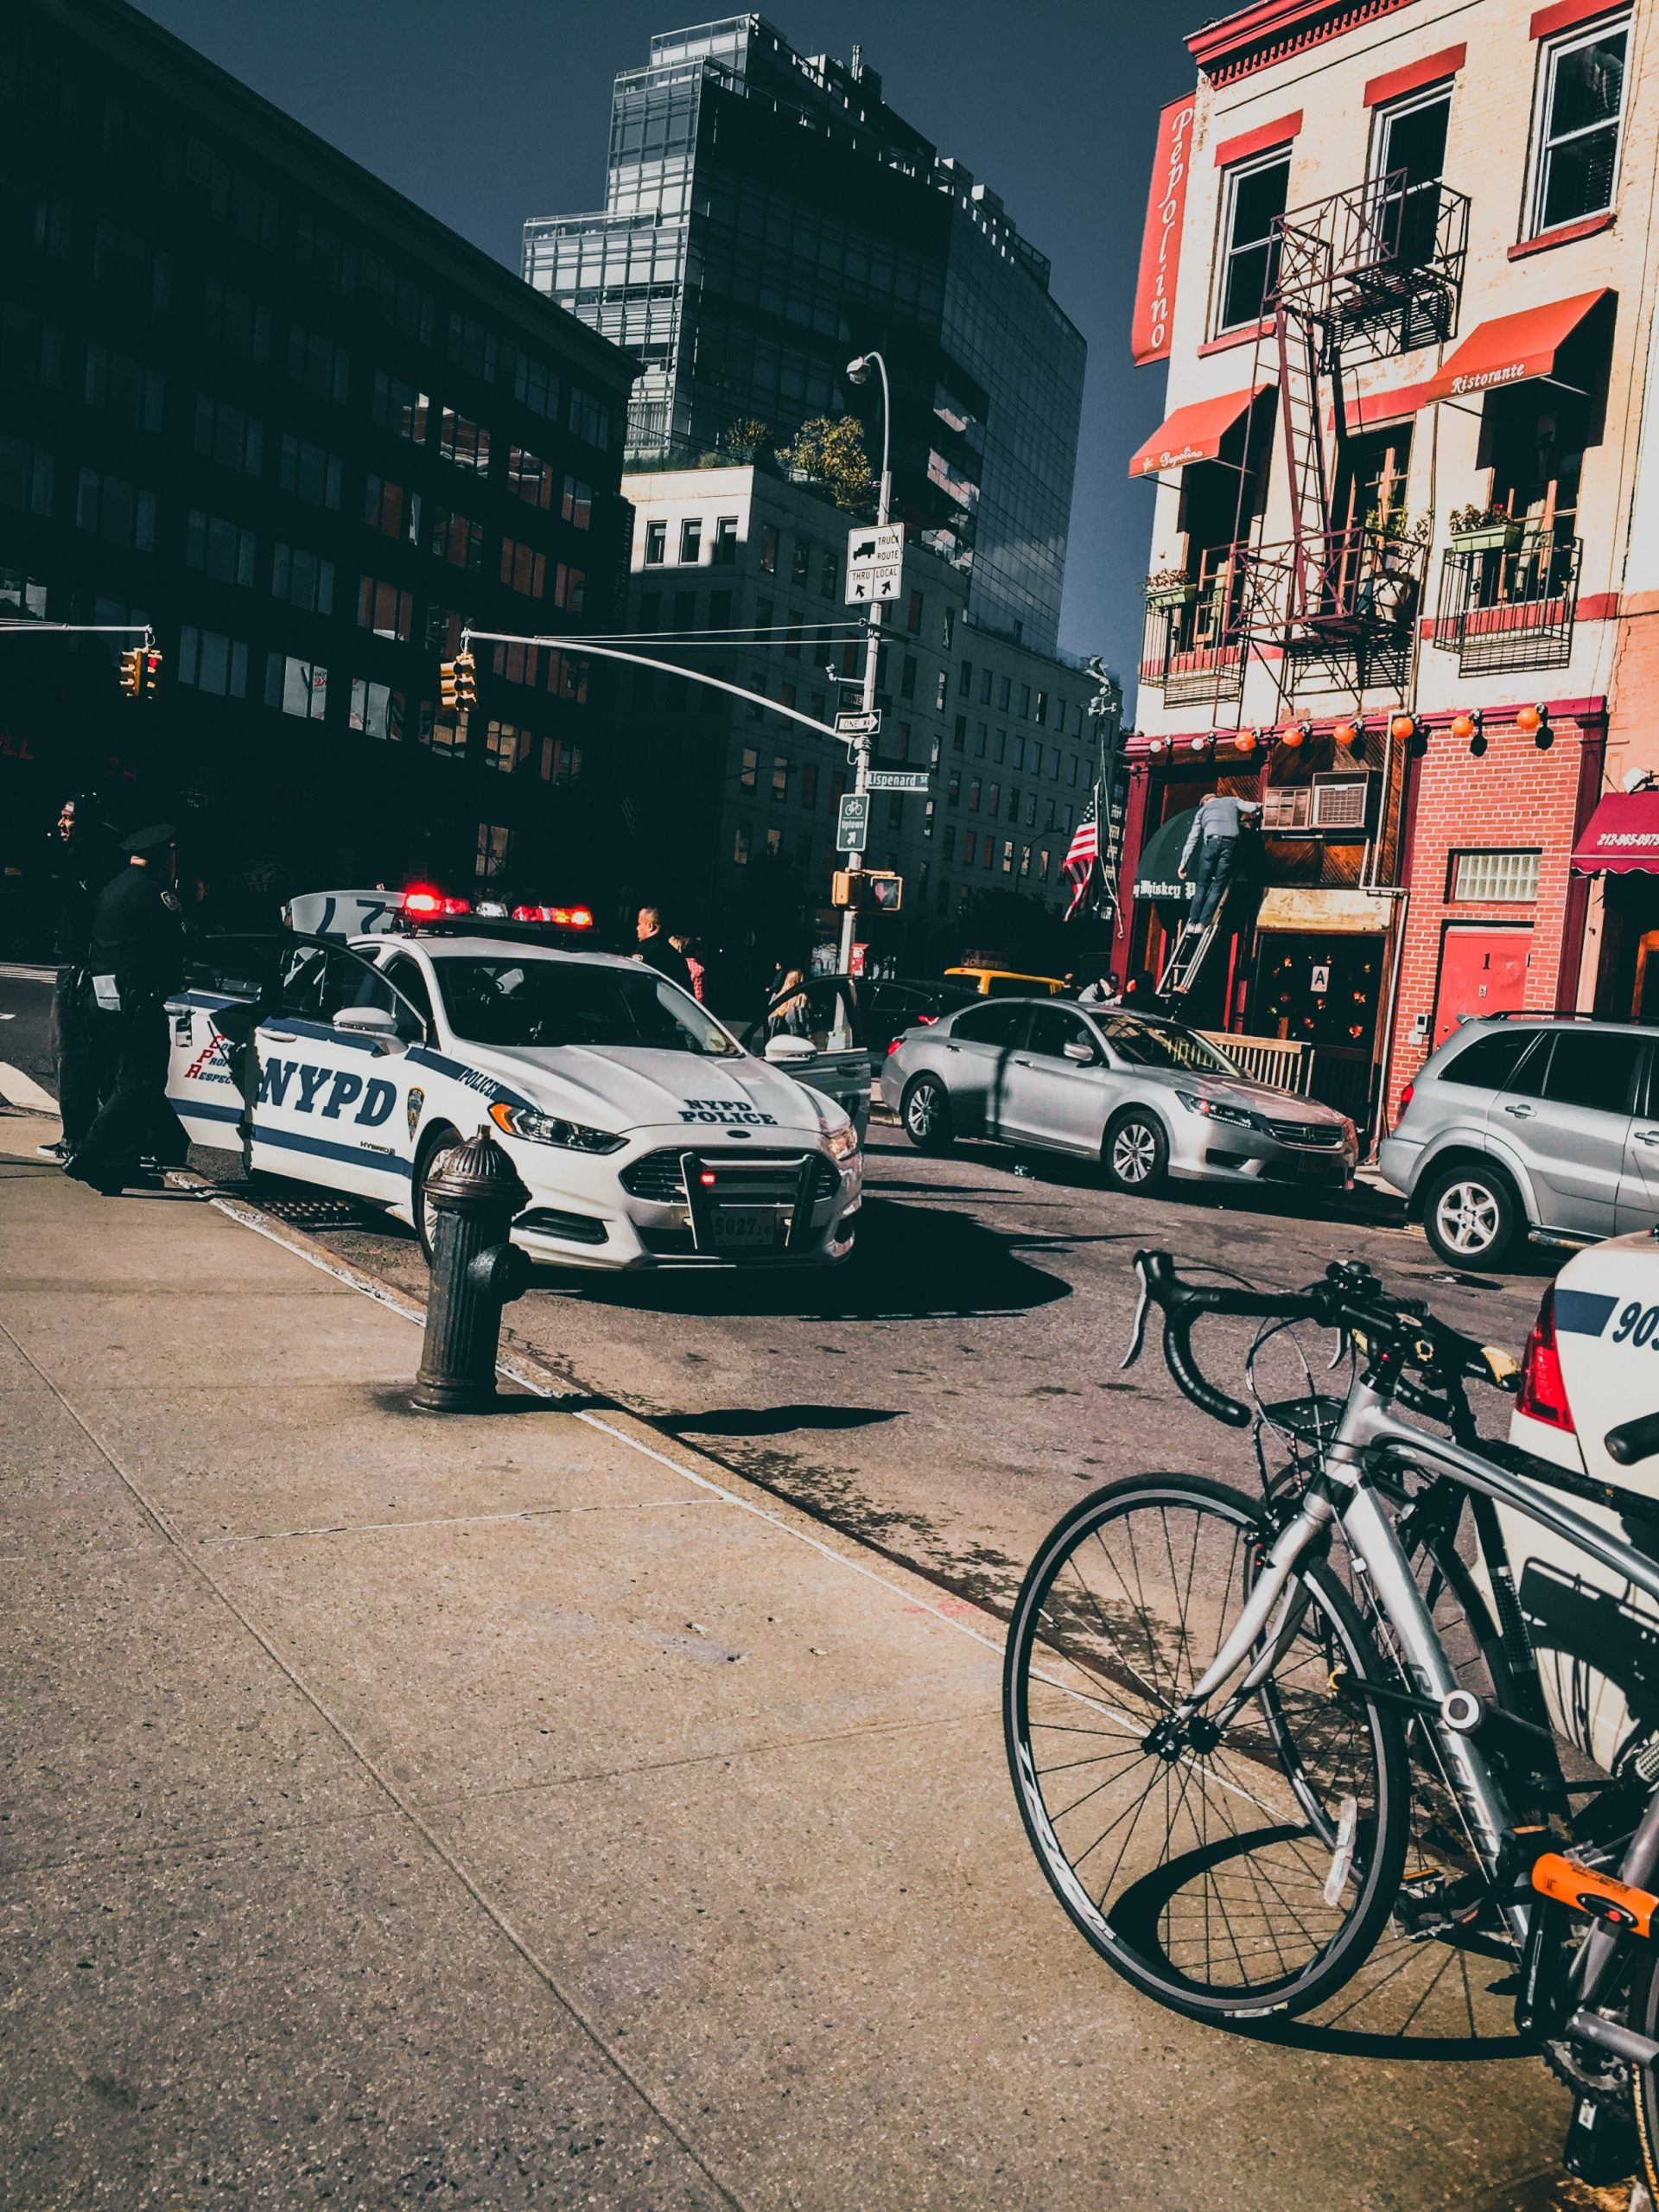 parked police